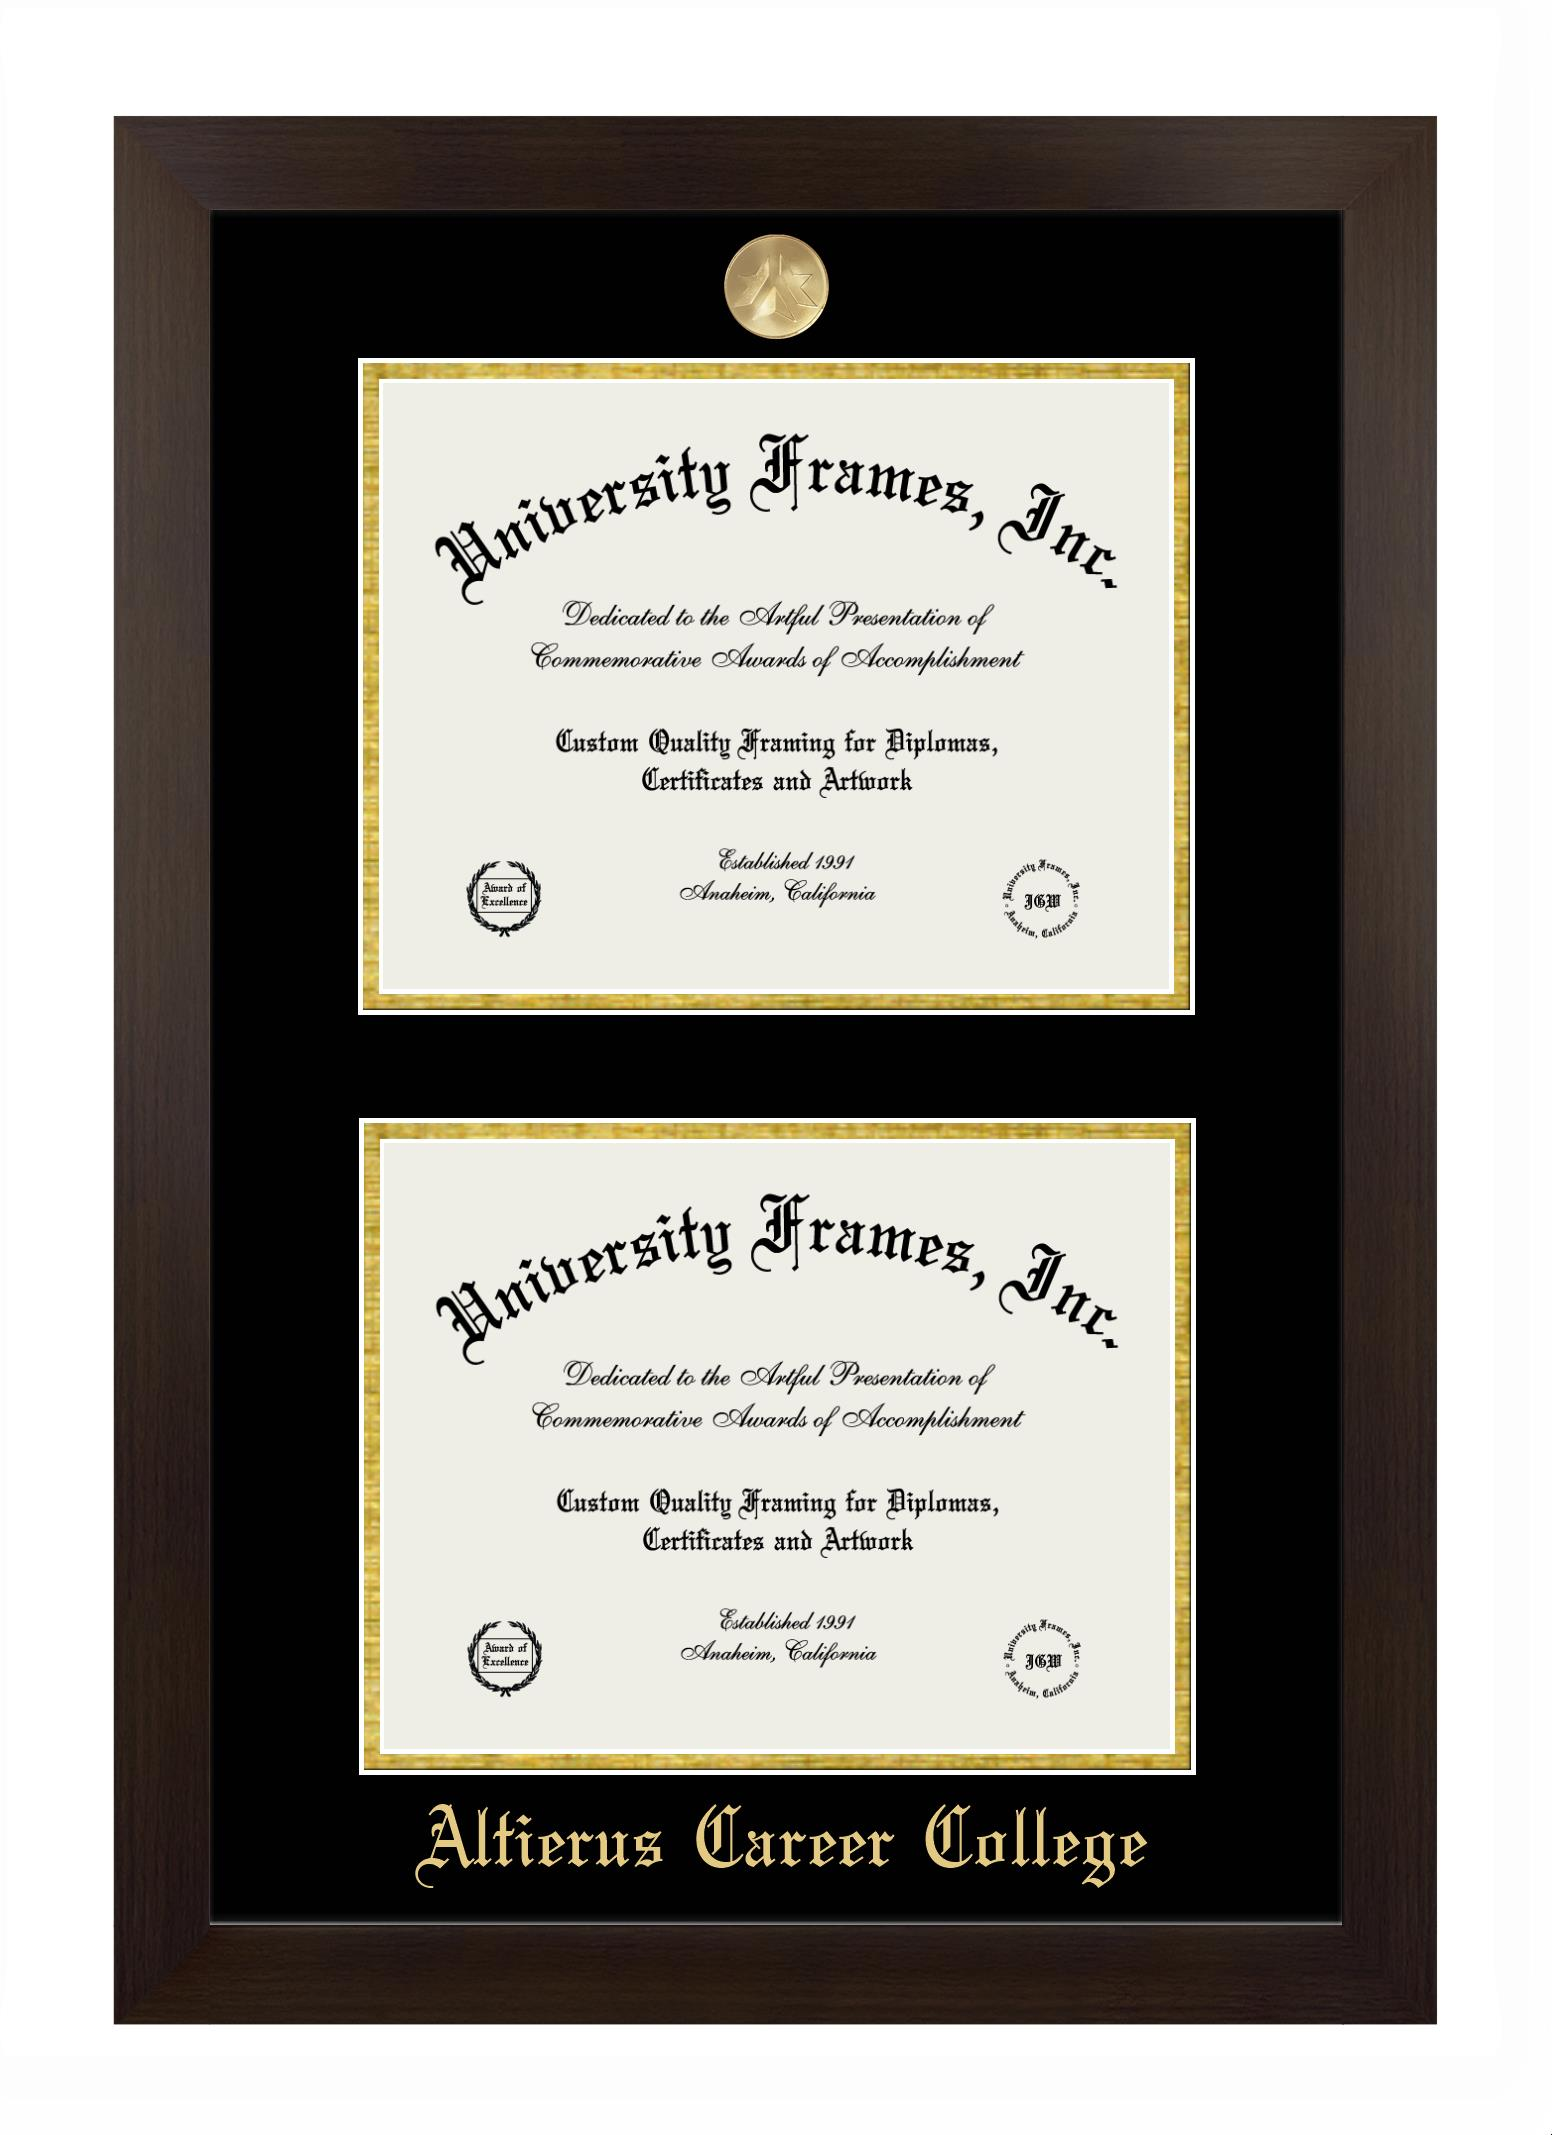 """Altierus Career College Altierus Career College Double Degree (Stacked) Frame in Manhattan Espresso with Black & Gold Mats for DOCUMENT: 8 1/2""""H X 11""""W  , DOCUMENT: 8 1/2""""H X 11""""W"""